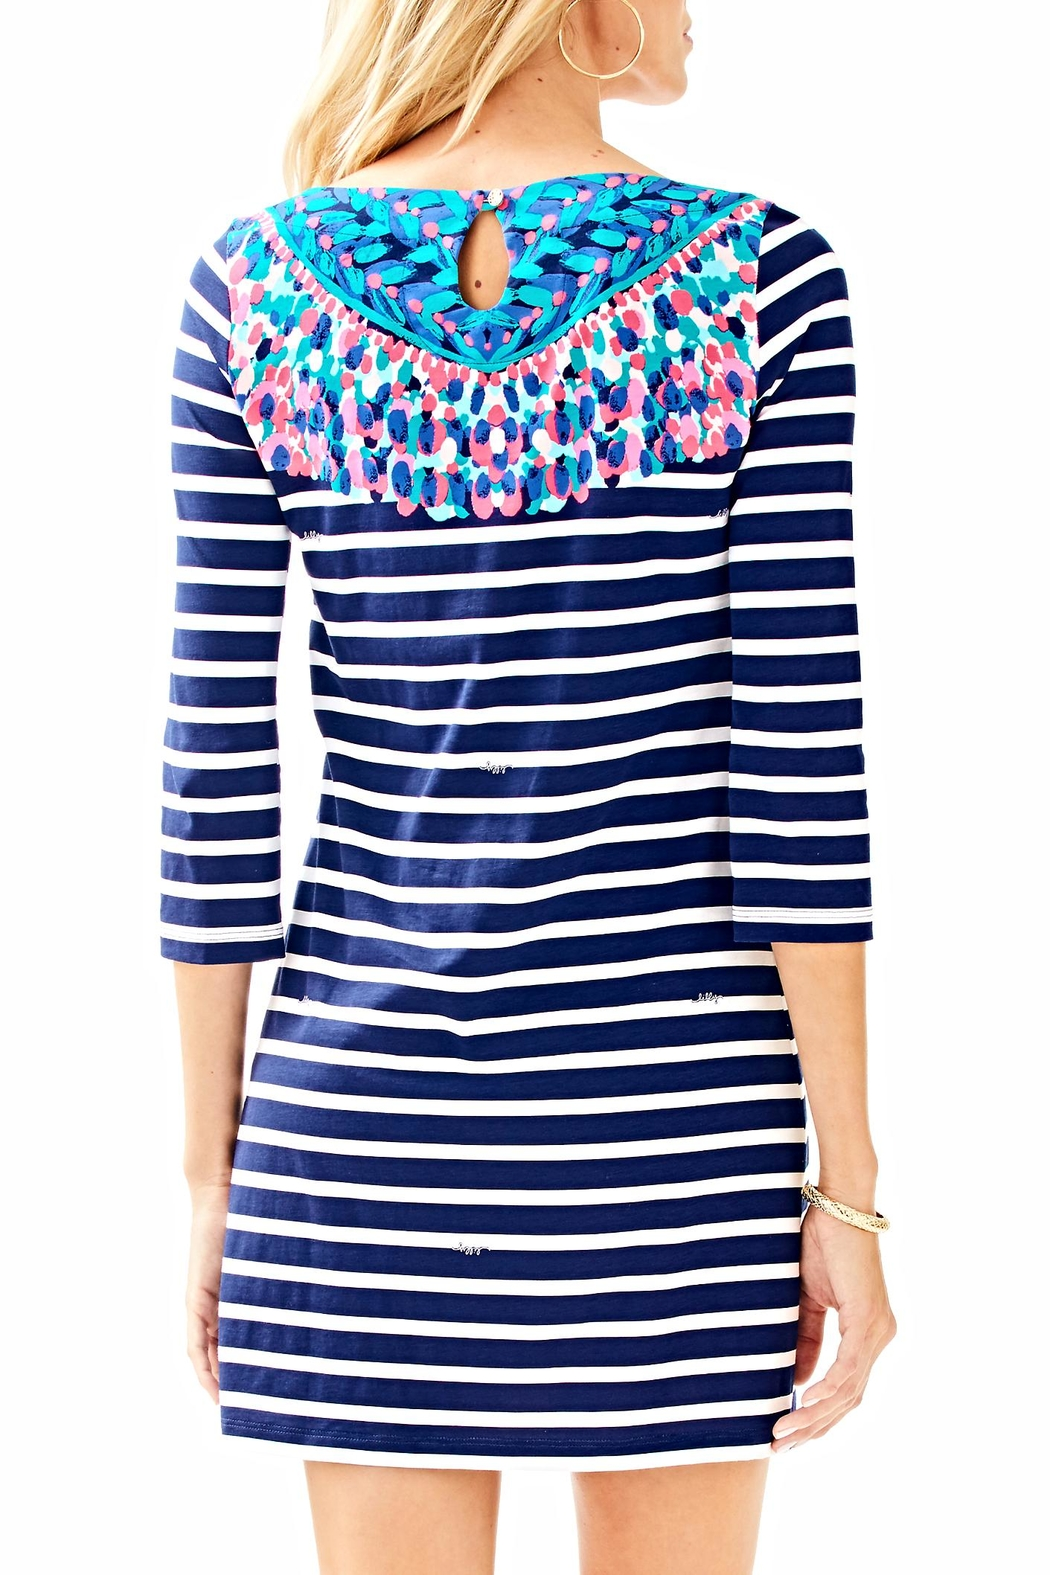 Lilly Pulitzer Bay Dress - Front Full Image